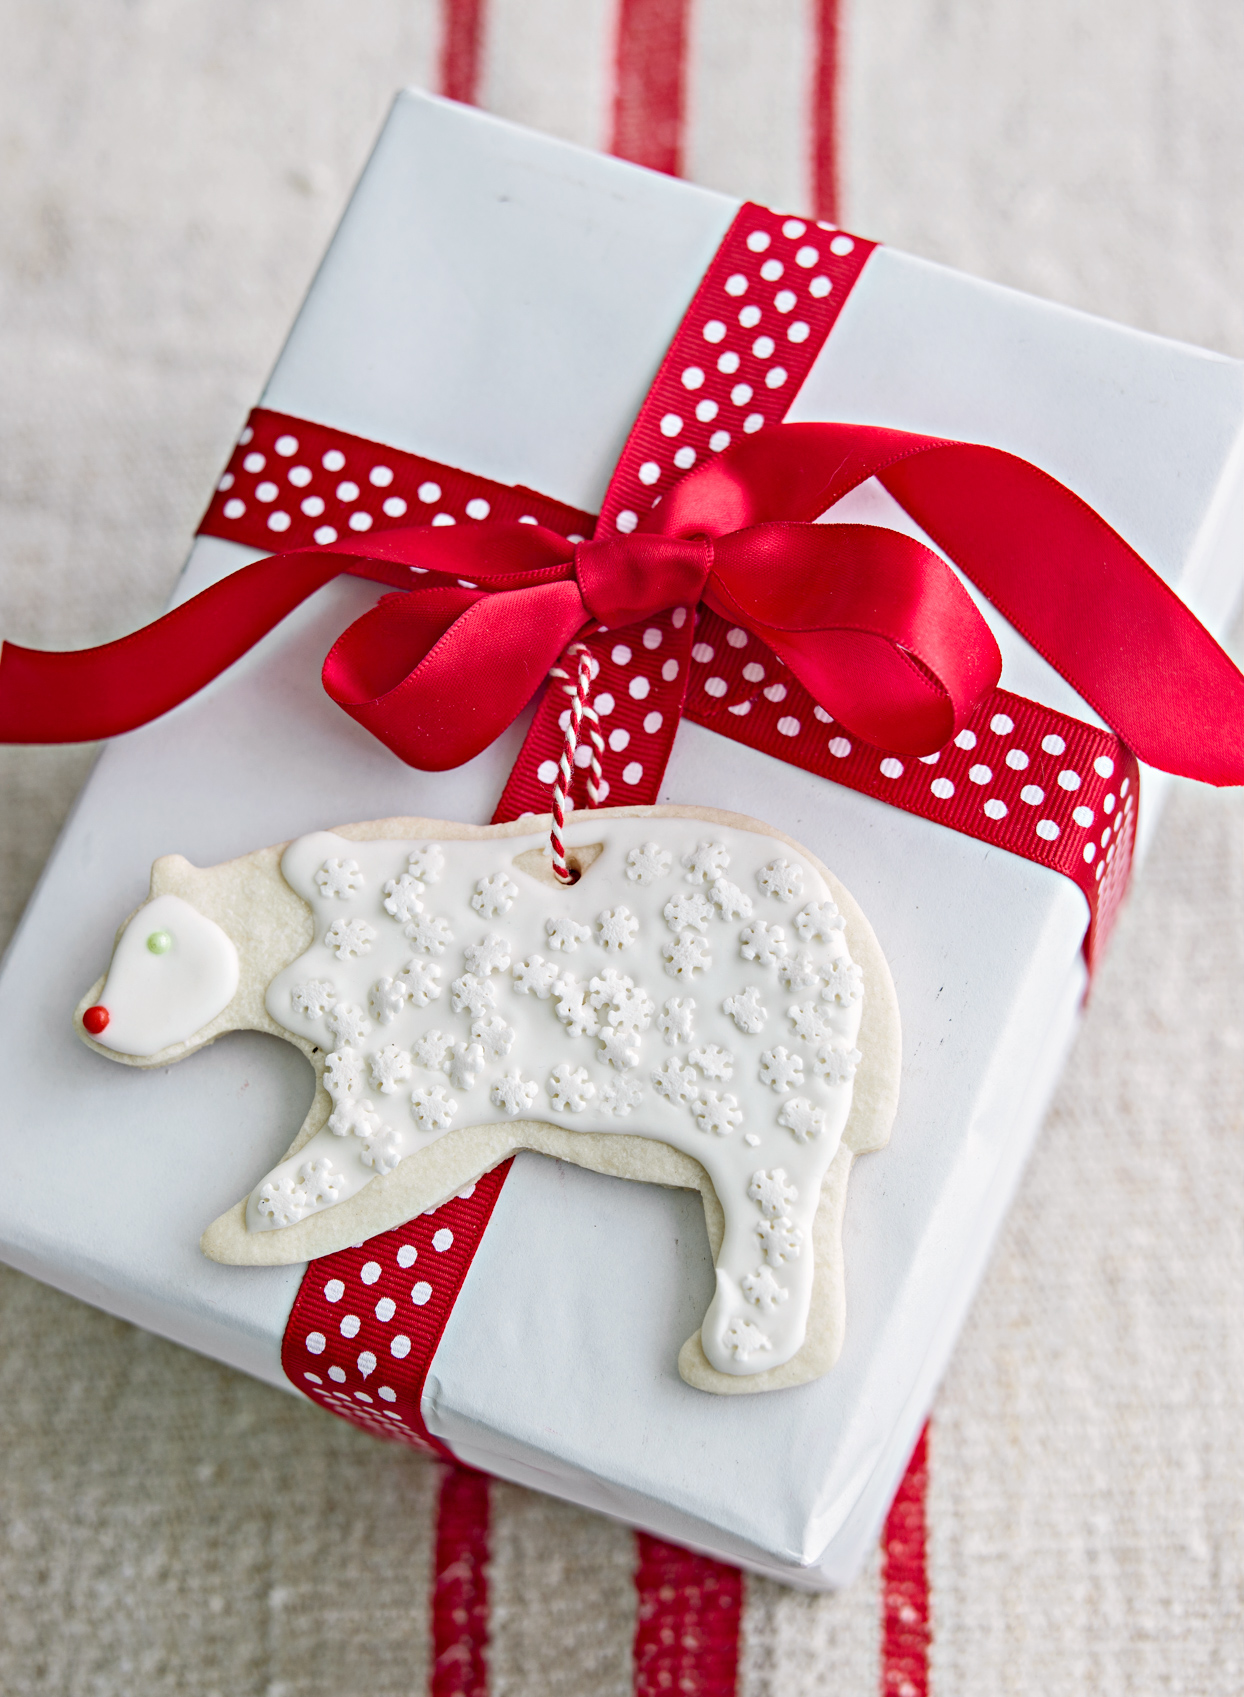 Baked Clay Ornaments